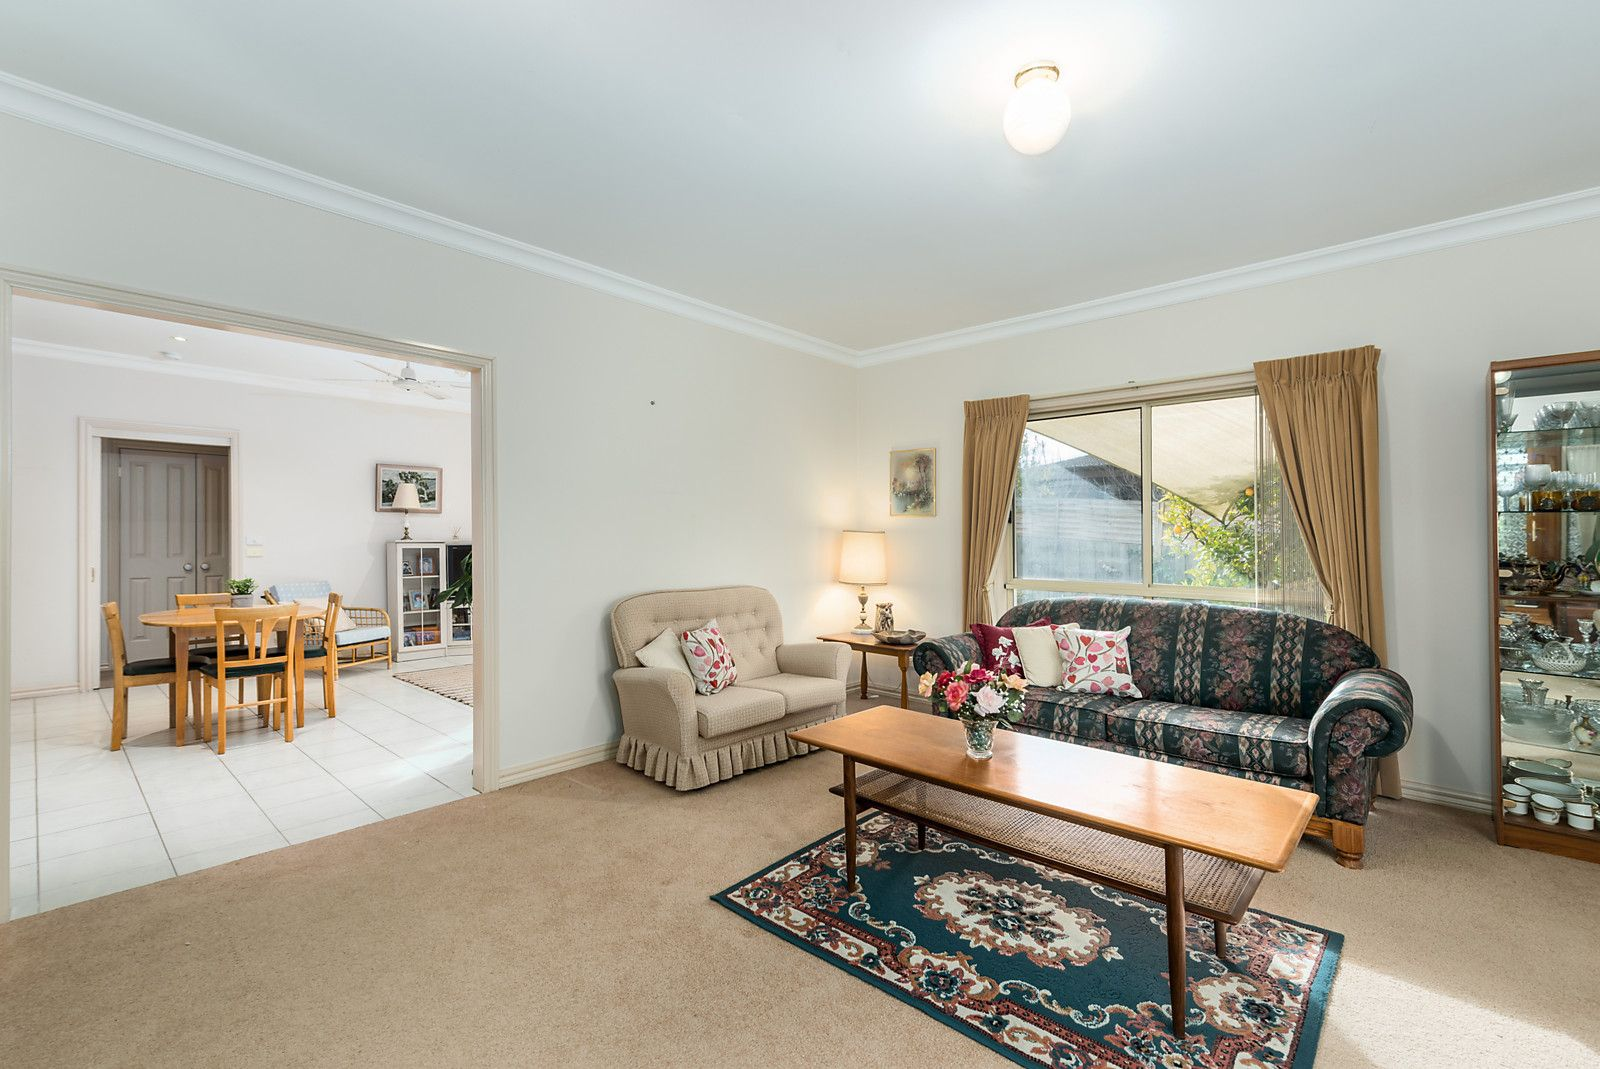 25A Minchinbury Drive, Vermont South VIC 3133, Image 2